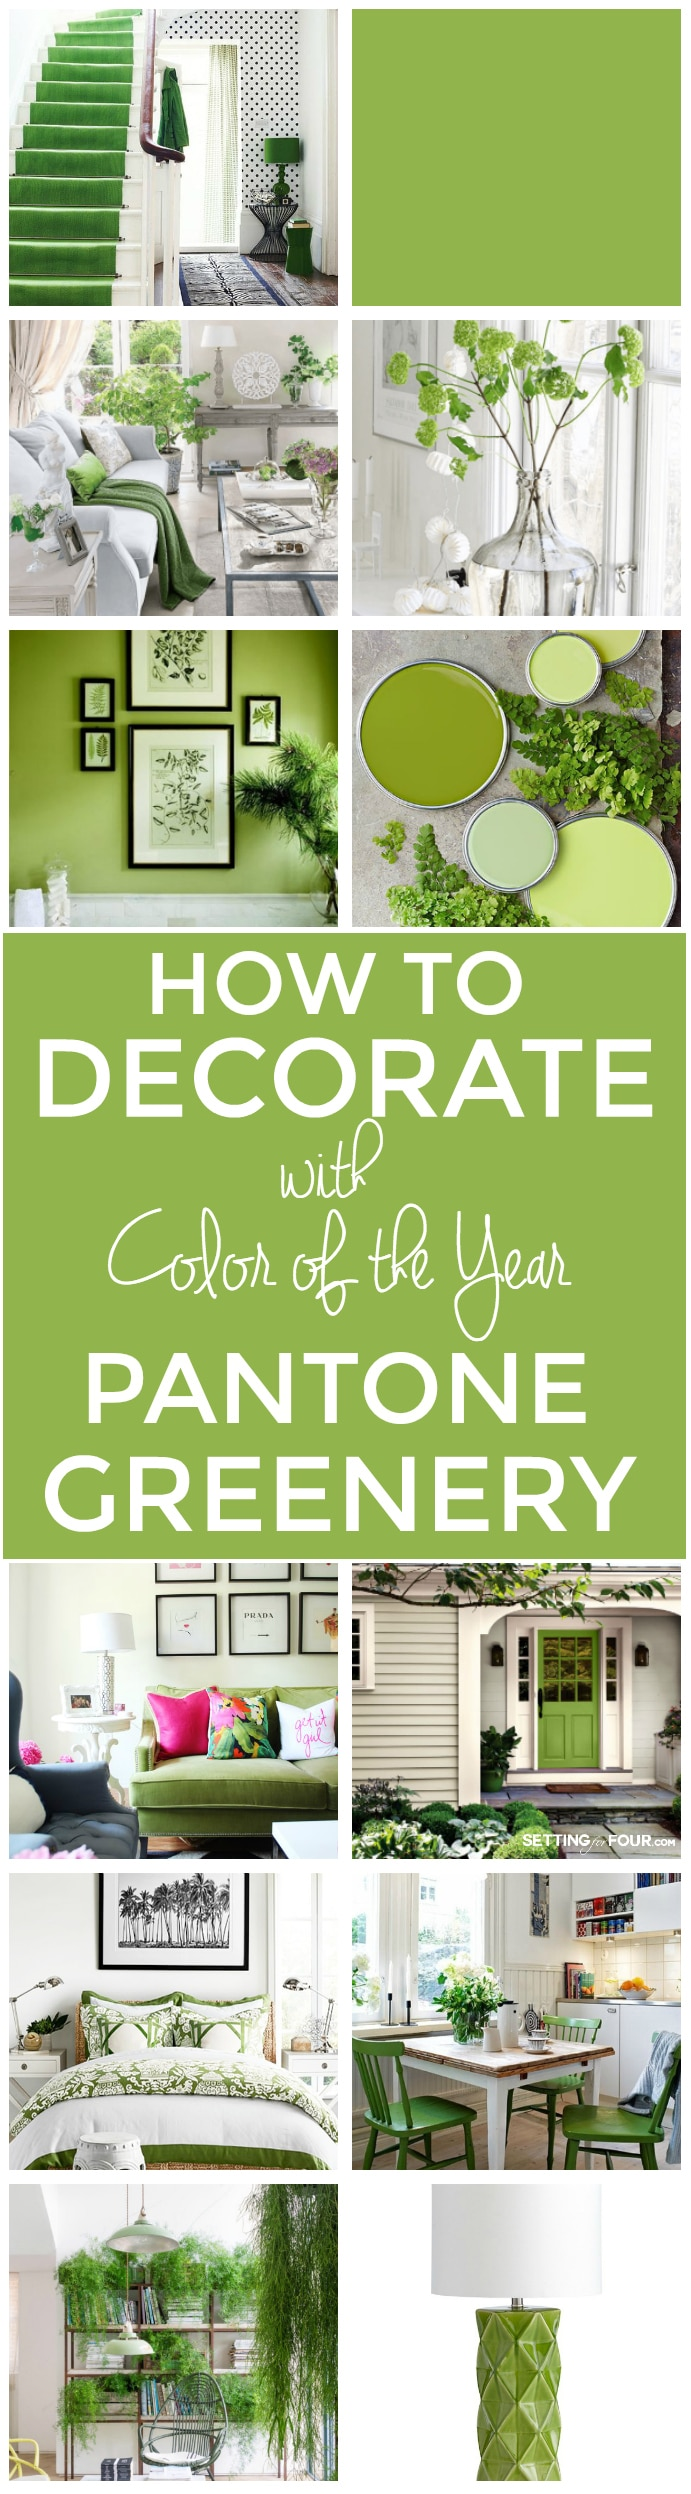 How to Decorate with Pantone Color of the Year 2017: Greenery. A beautiful paint color for the home.